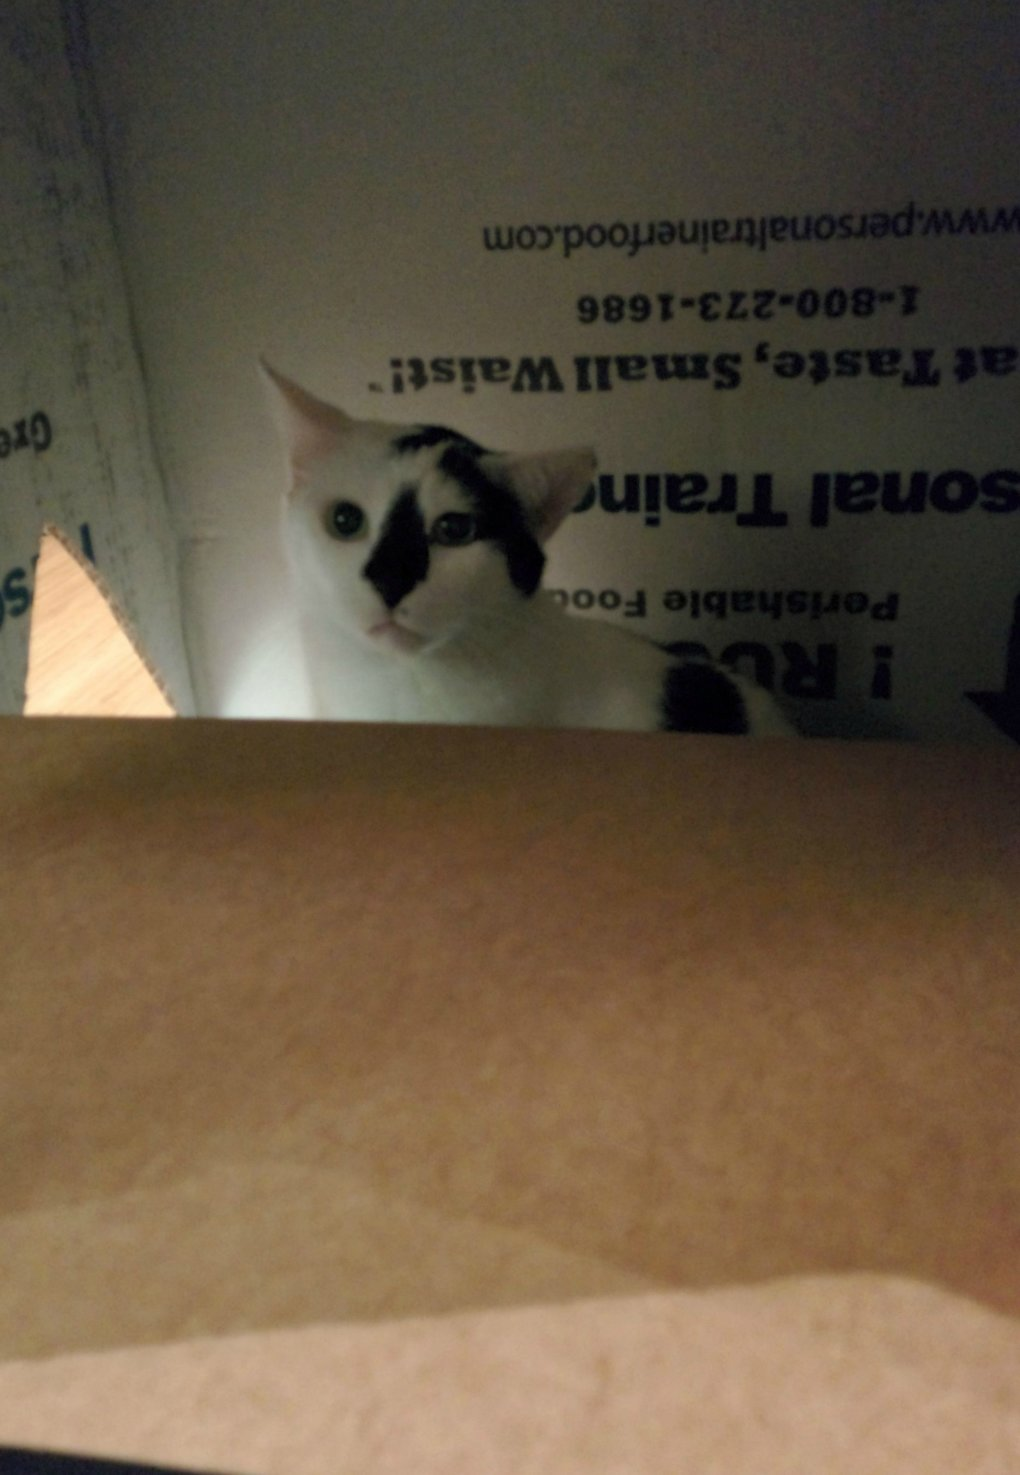 d7suo4p - why don't we build cardboard castle to our cats? this is how to do it.